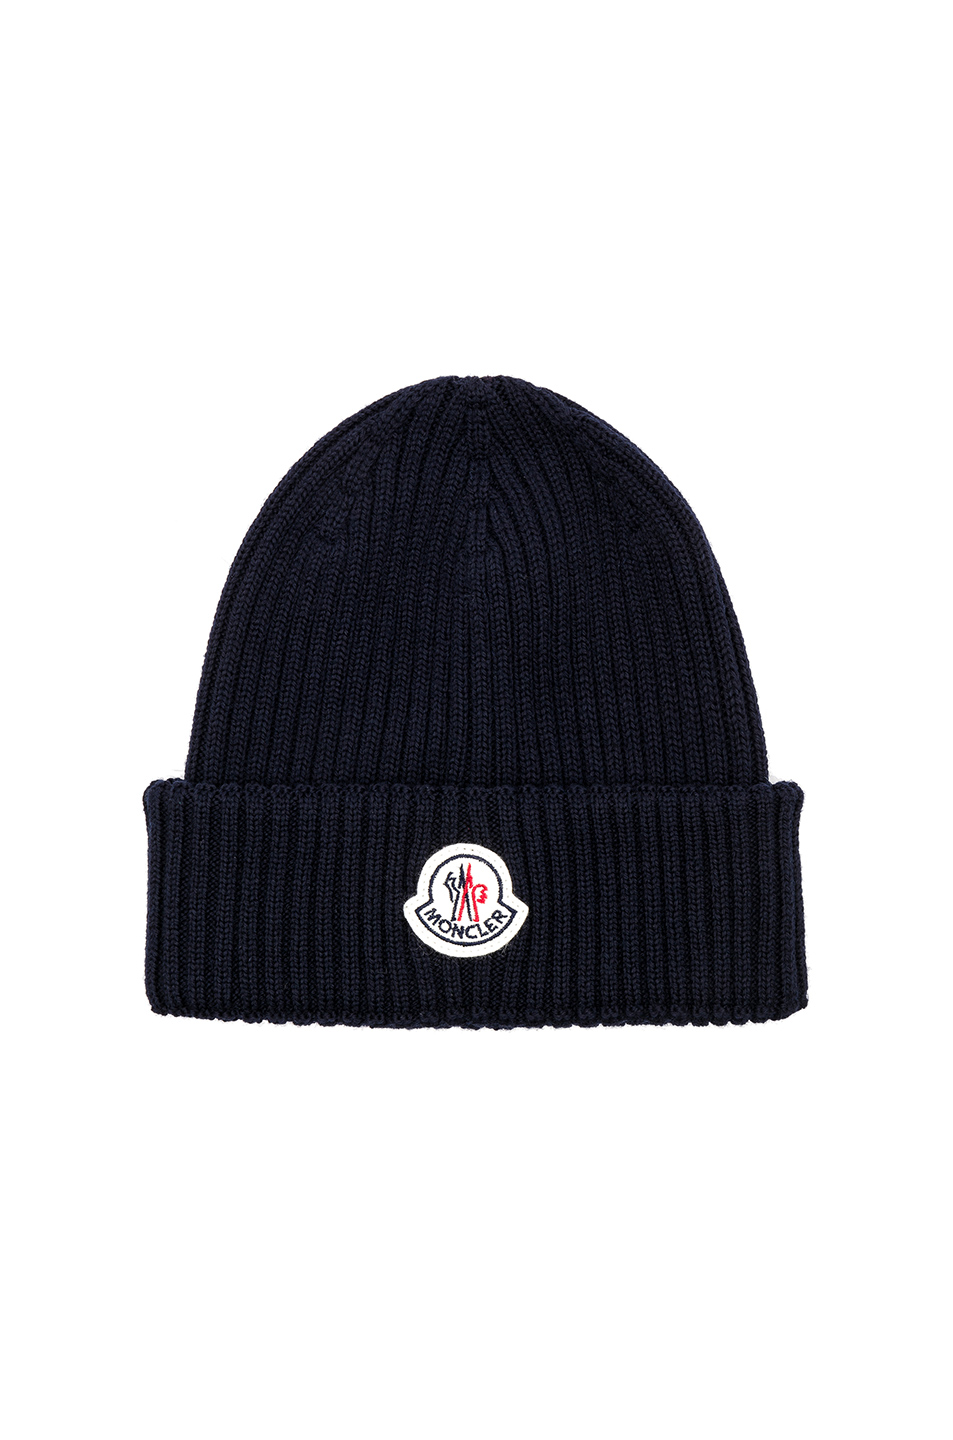 Buy Original Moncler Beanie at Indonesia  654401a34ee